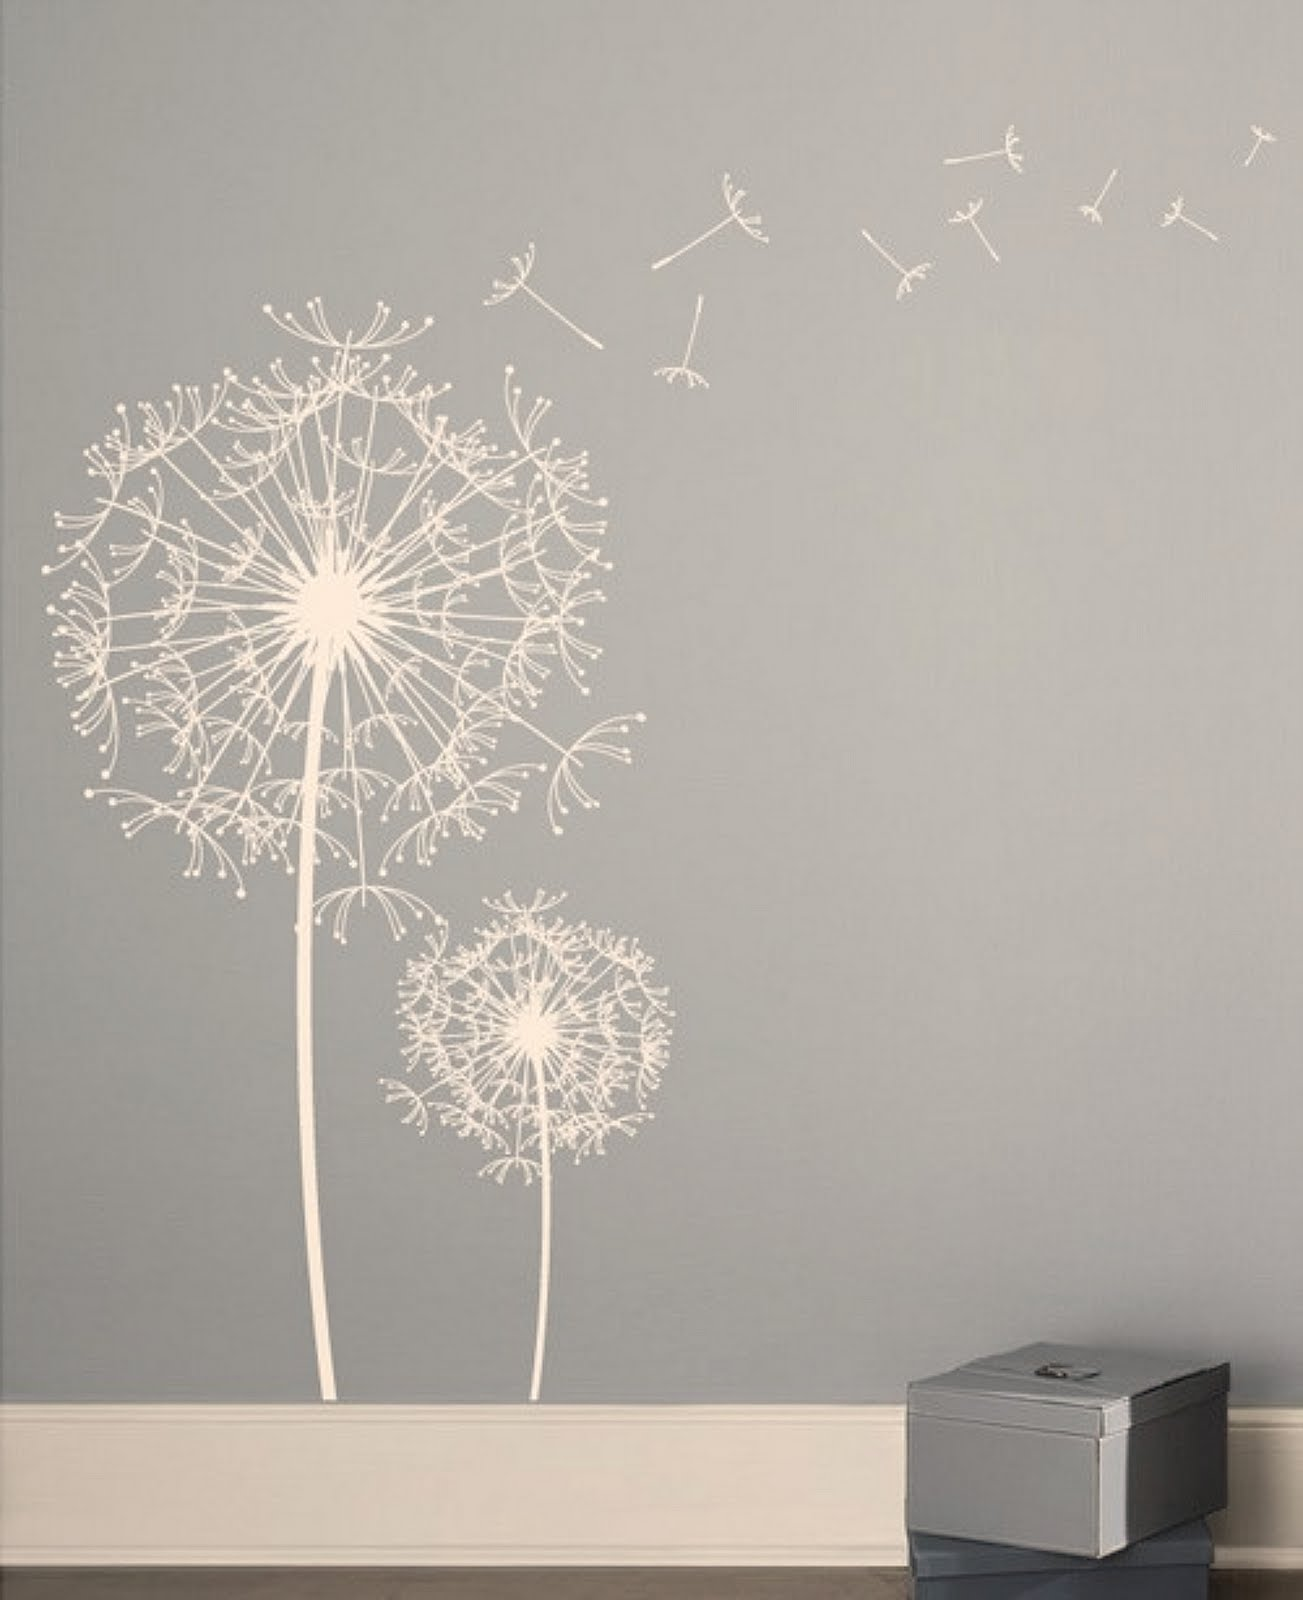 Bathroom wall decorations bathroom wall decals impressive dandelion wall decal 1303 x 1600 103 kb jpeg amipublicfo Images